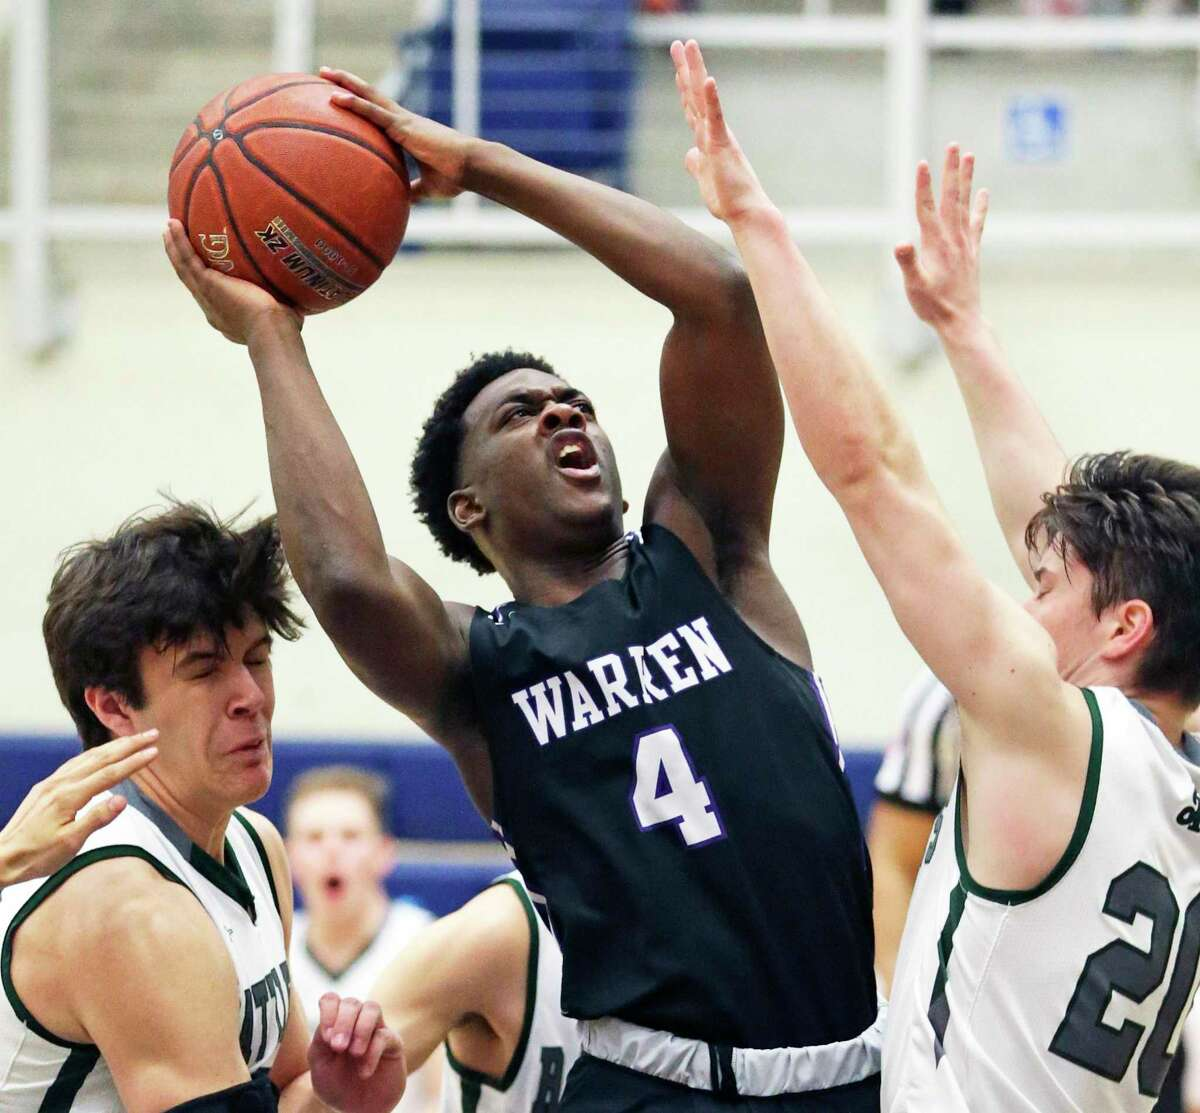 Zane Elmore battles in the lane to put up a shot against Will Carsten, left, and Zach Lee as Warren plays Reagan in boys basketball playoff action at Taylor Field House on Feb. 24, 2020.